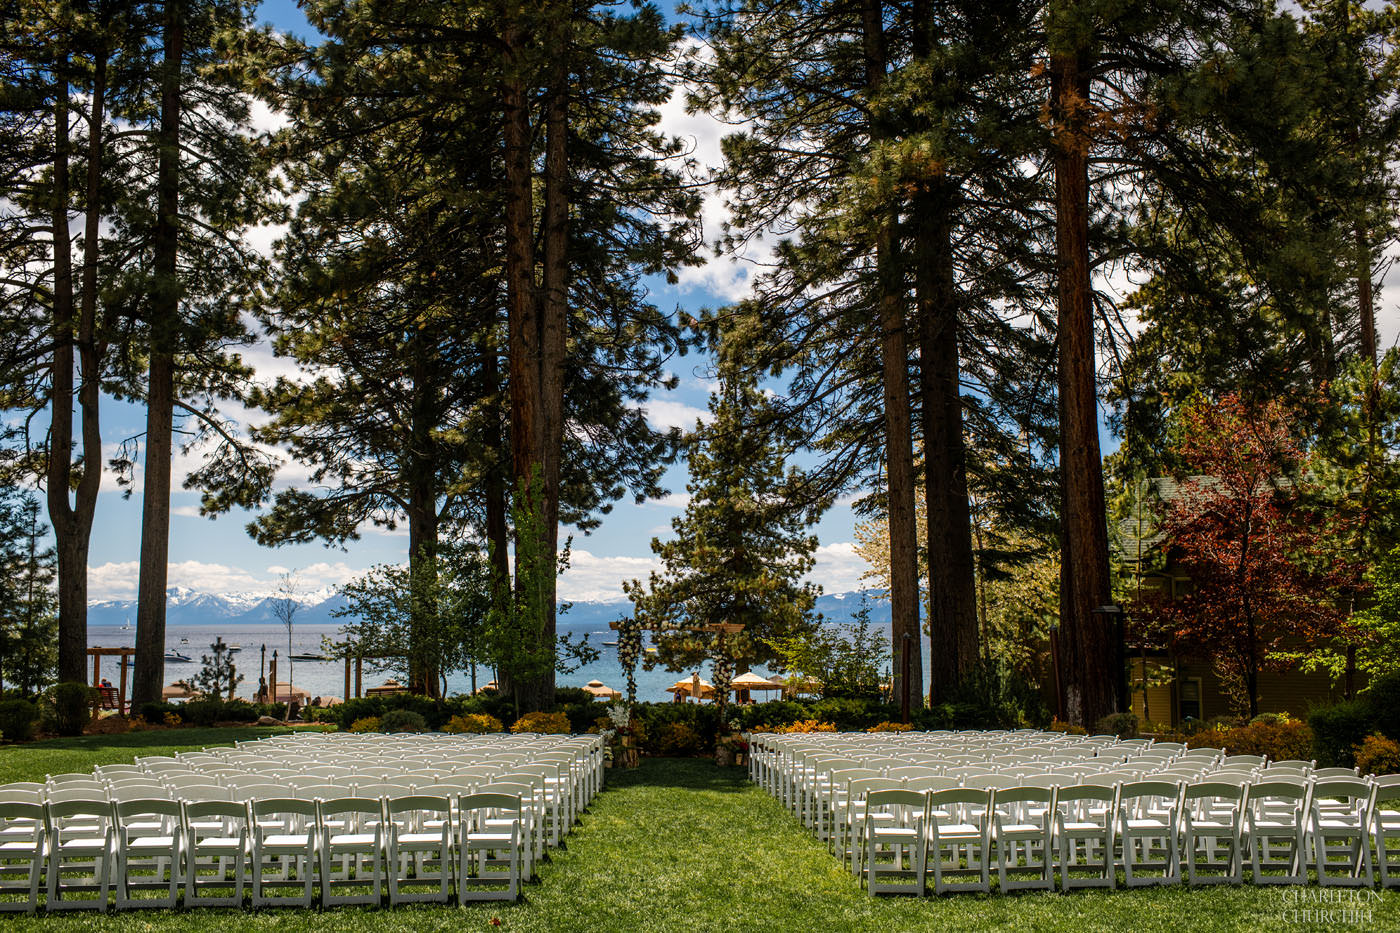 hyatt regency tahoe wedding on the lawn with the blue lake and mountains in the background